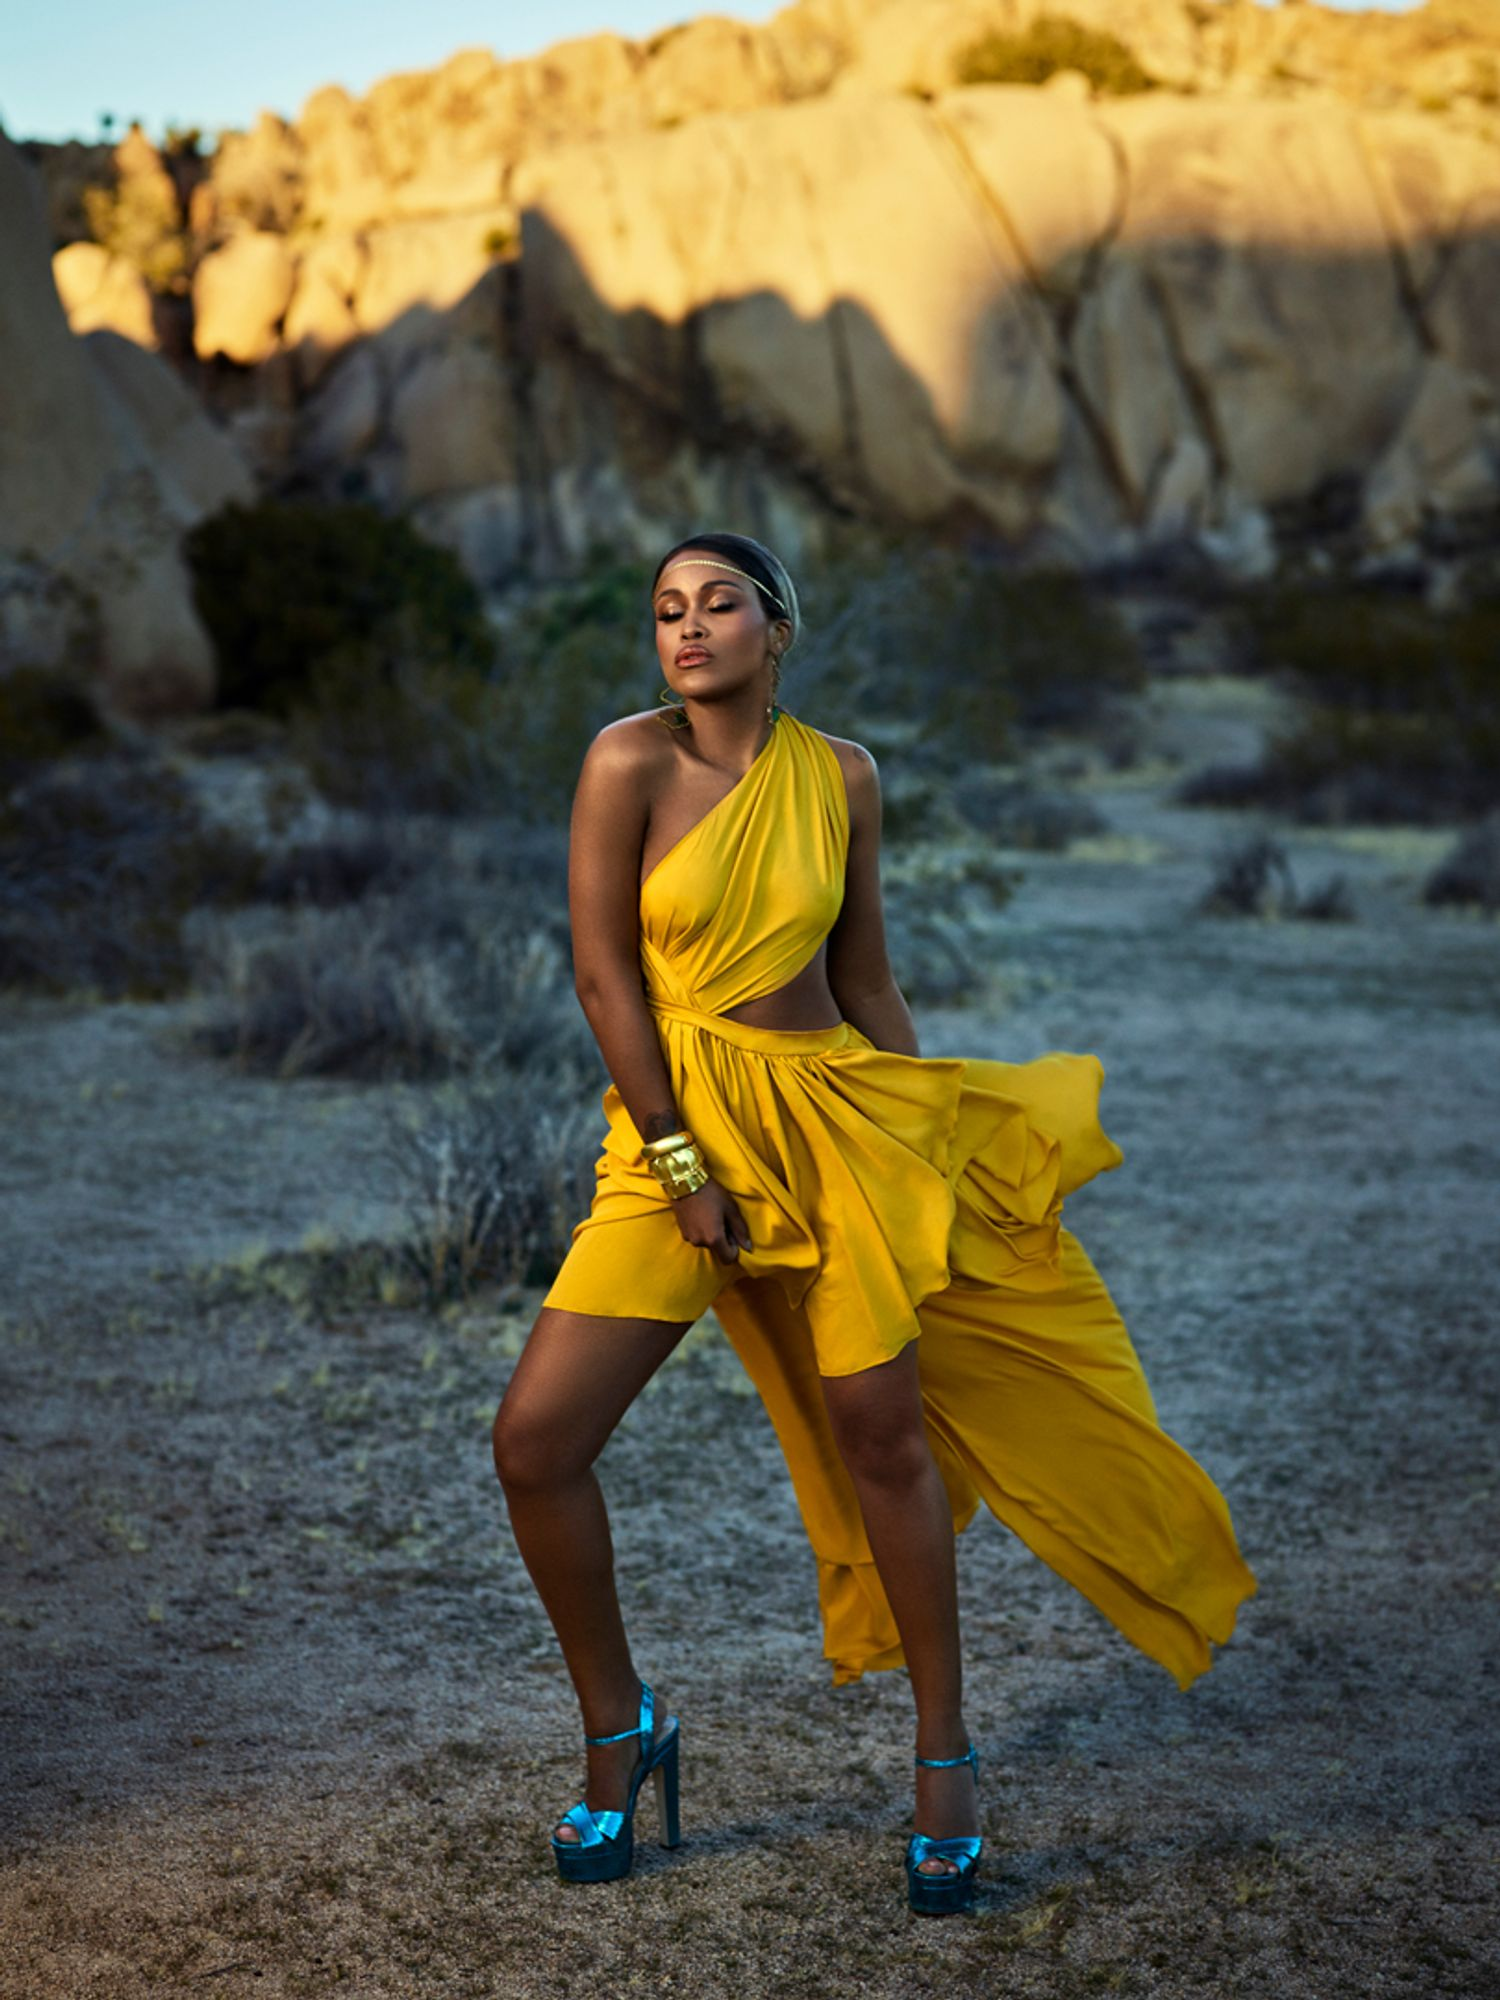 Eve of The Talk in a one shouldered yellow dress and blue shoes